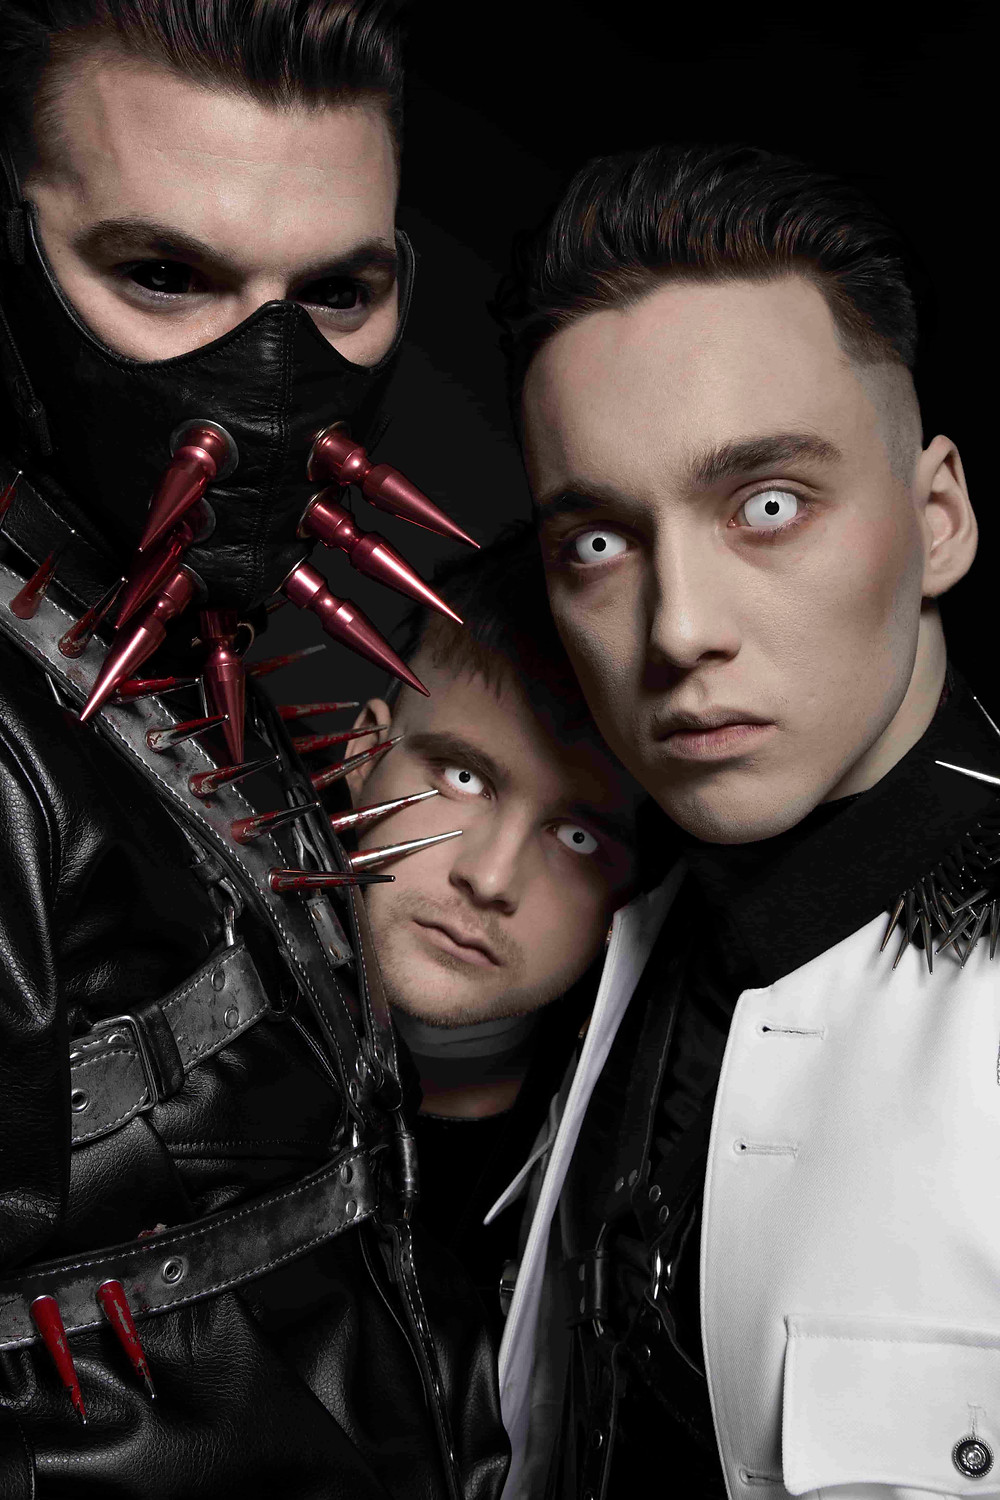 A photograph of the band Hatari from Iceland. Hatari: Einar Stefánsson, Klemens Hannigan, Matthías Haraldsson. Photo by Lilja Jóns